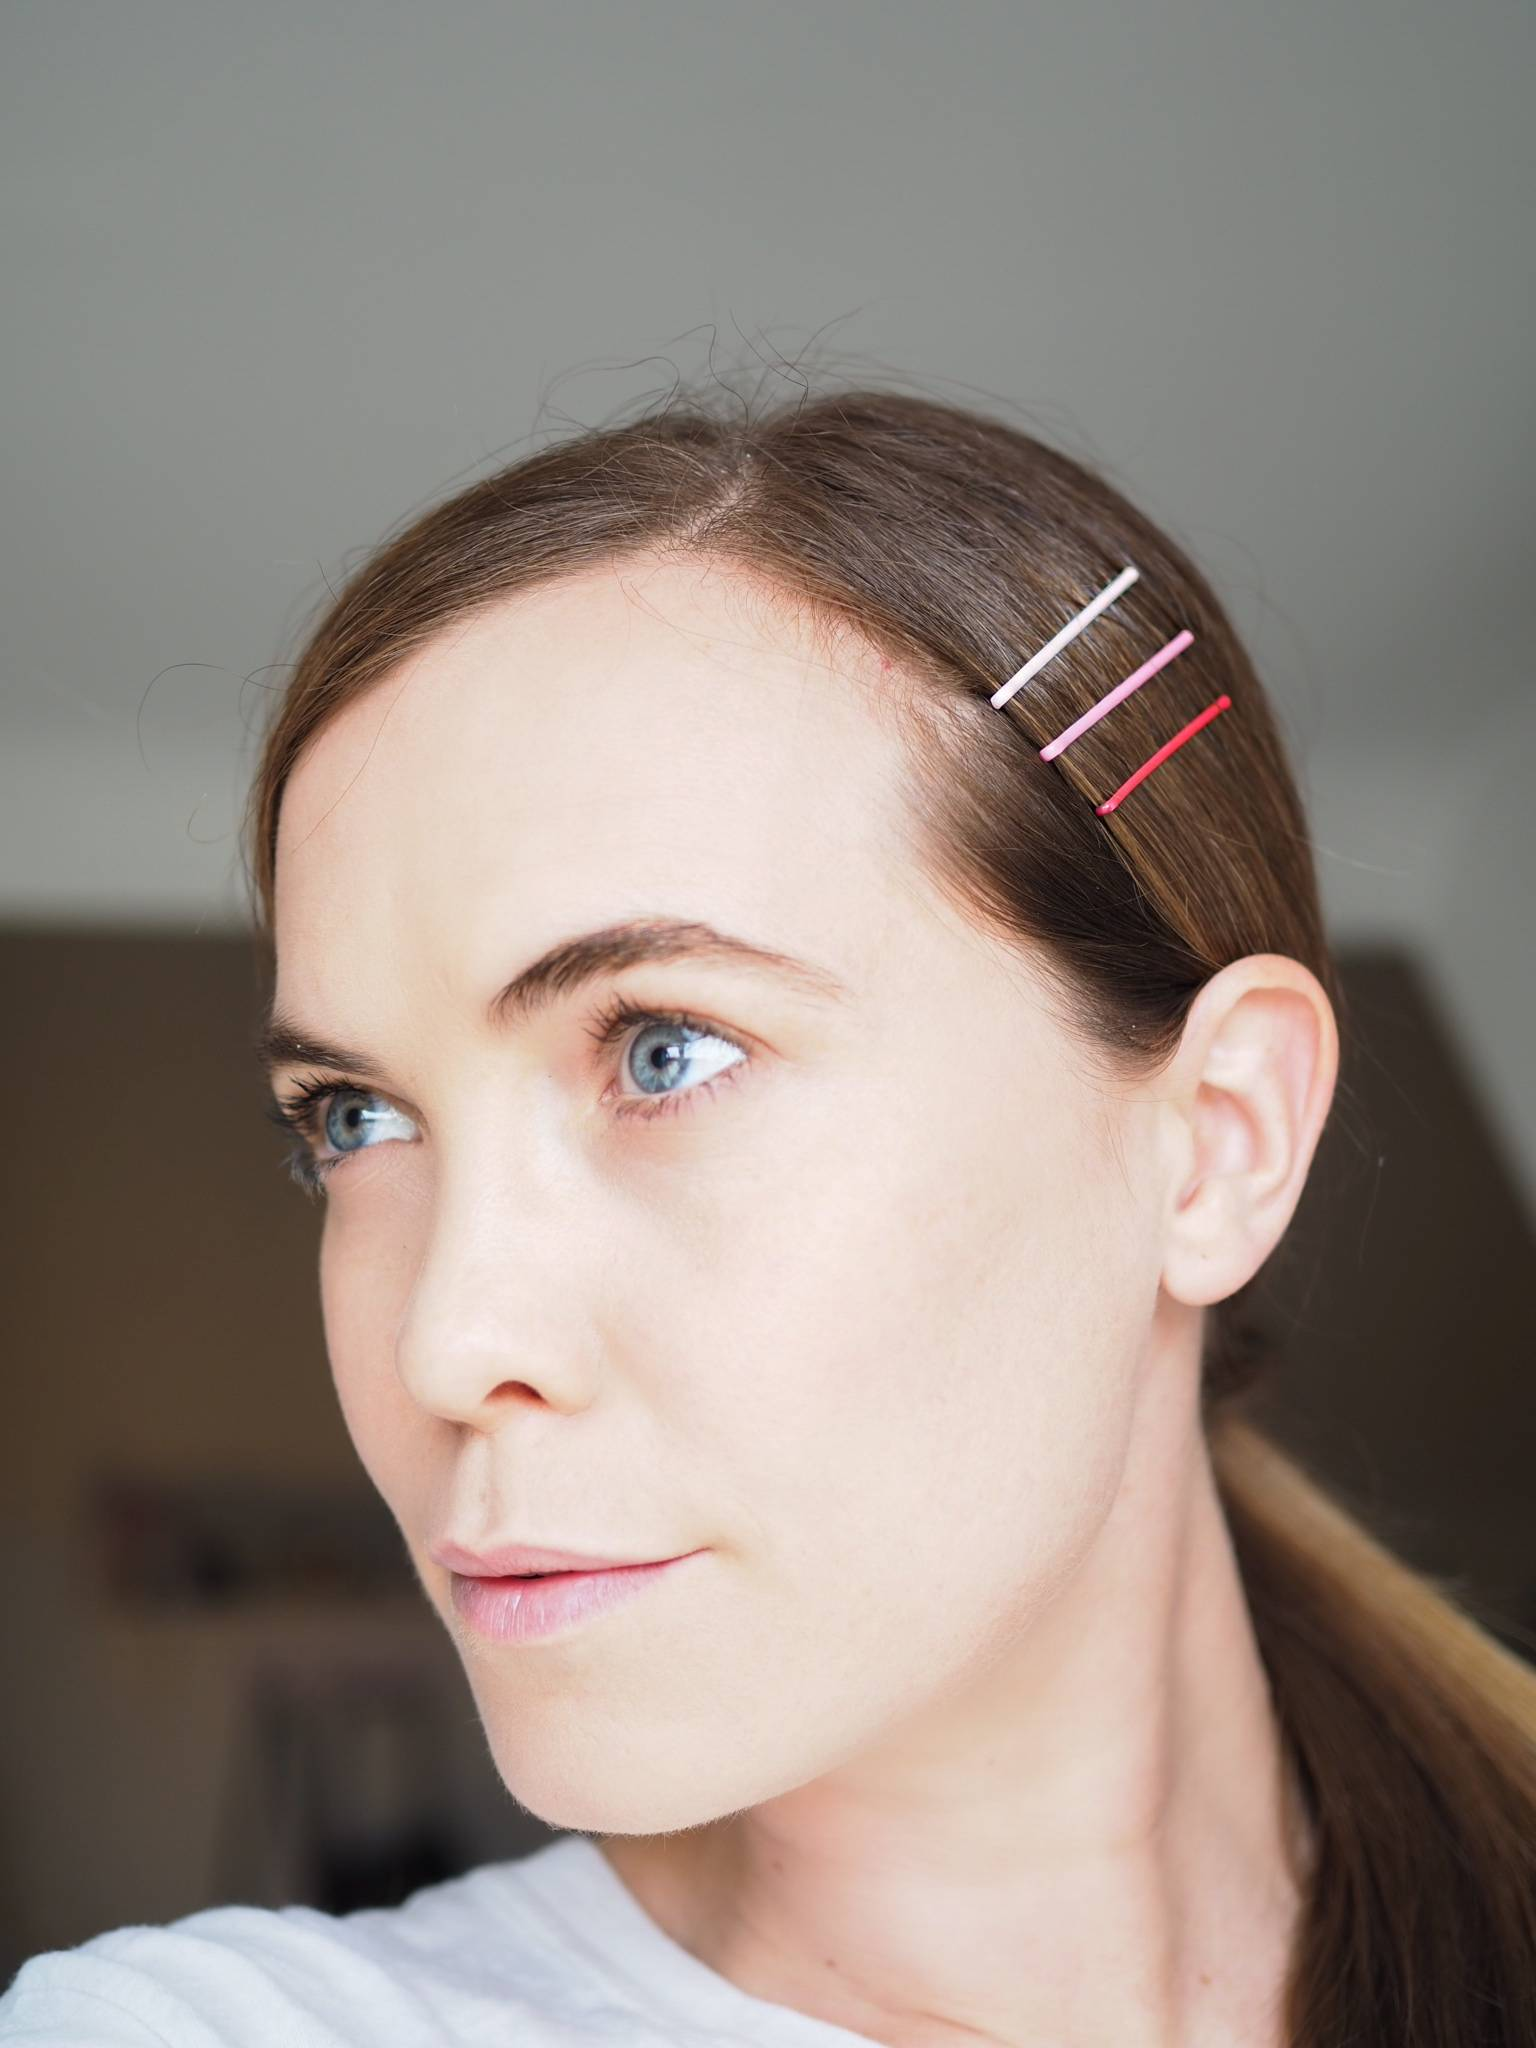 RAINBOW HAIR SLIDE | HOW TO | MEGAN TAYLOR